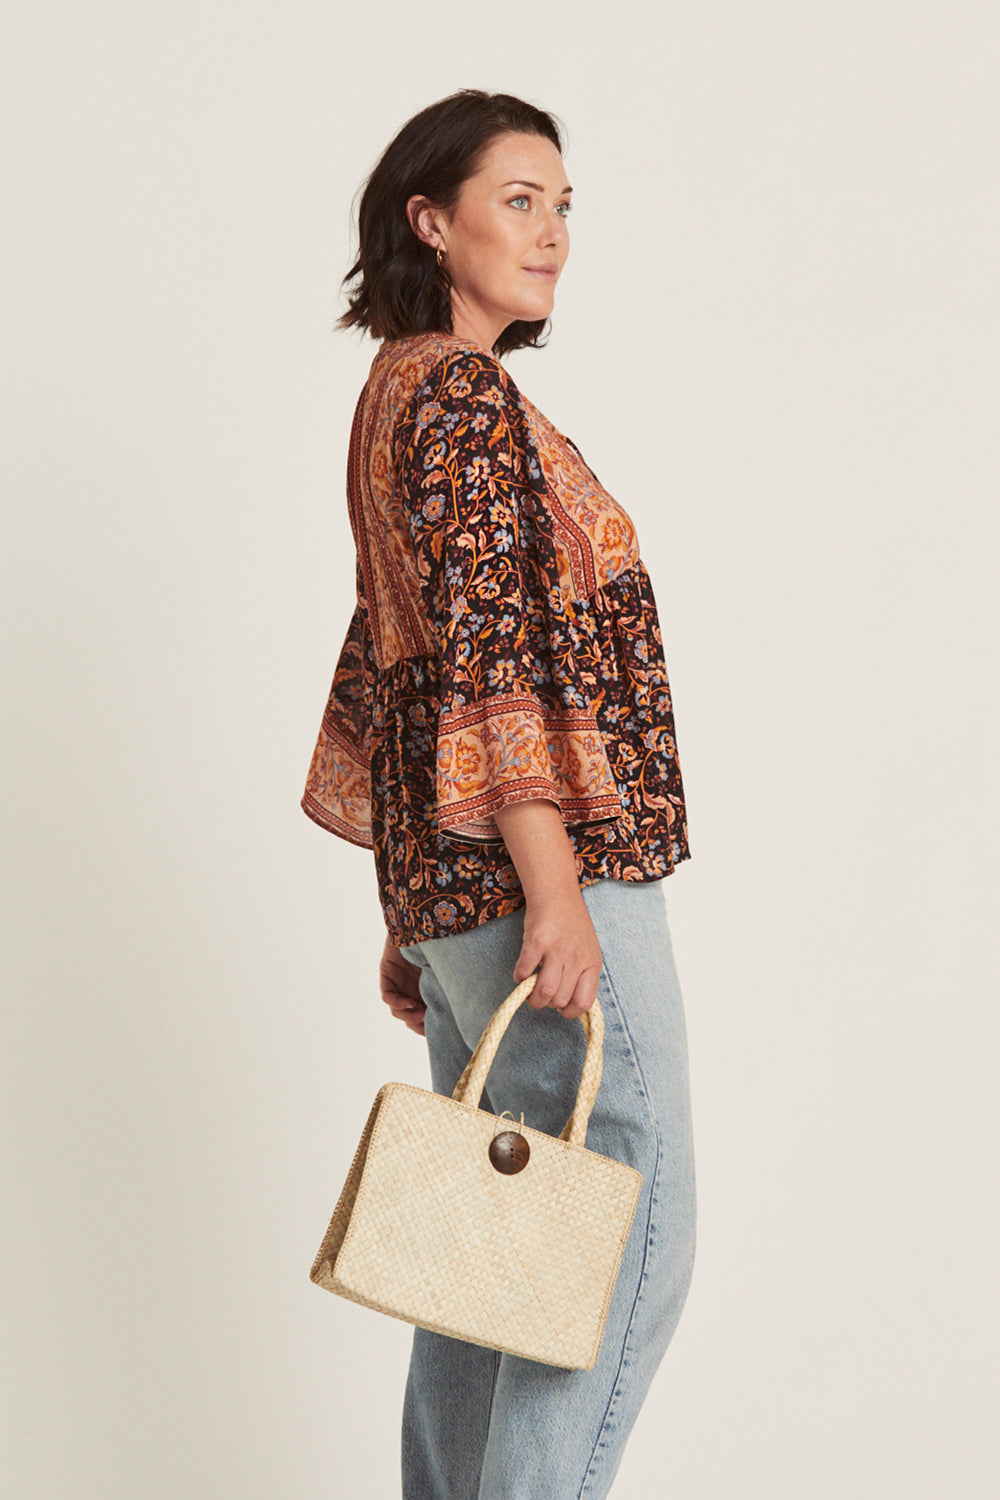 Daisy Chain Blouse in Amber